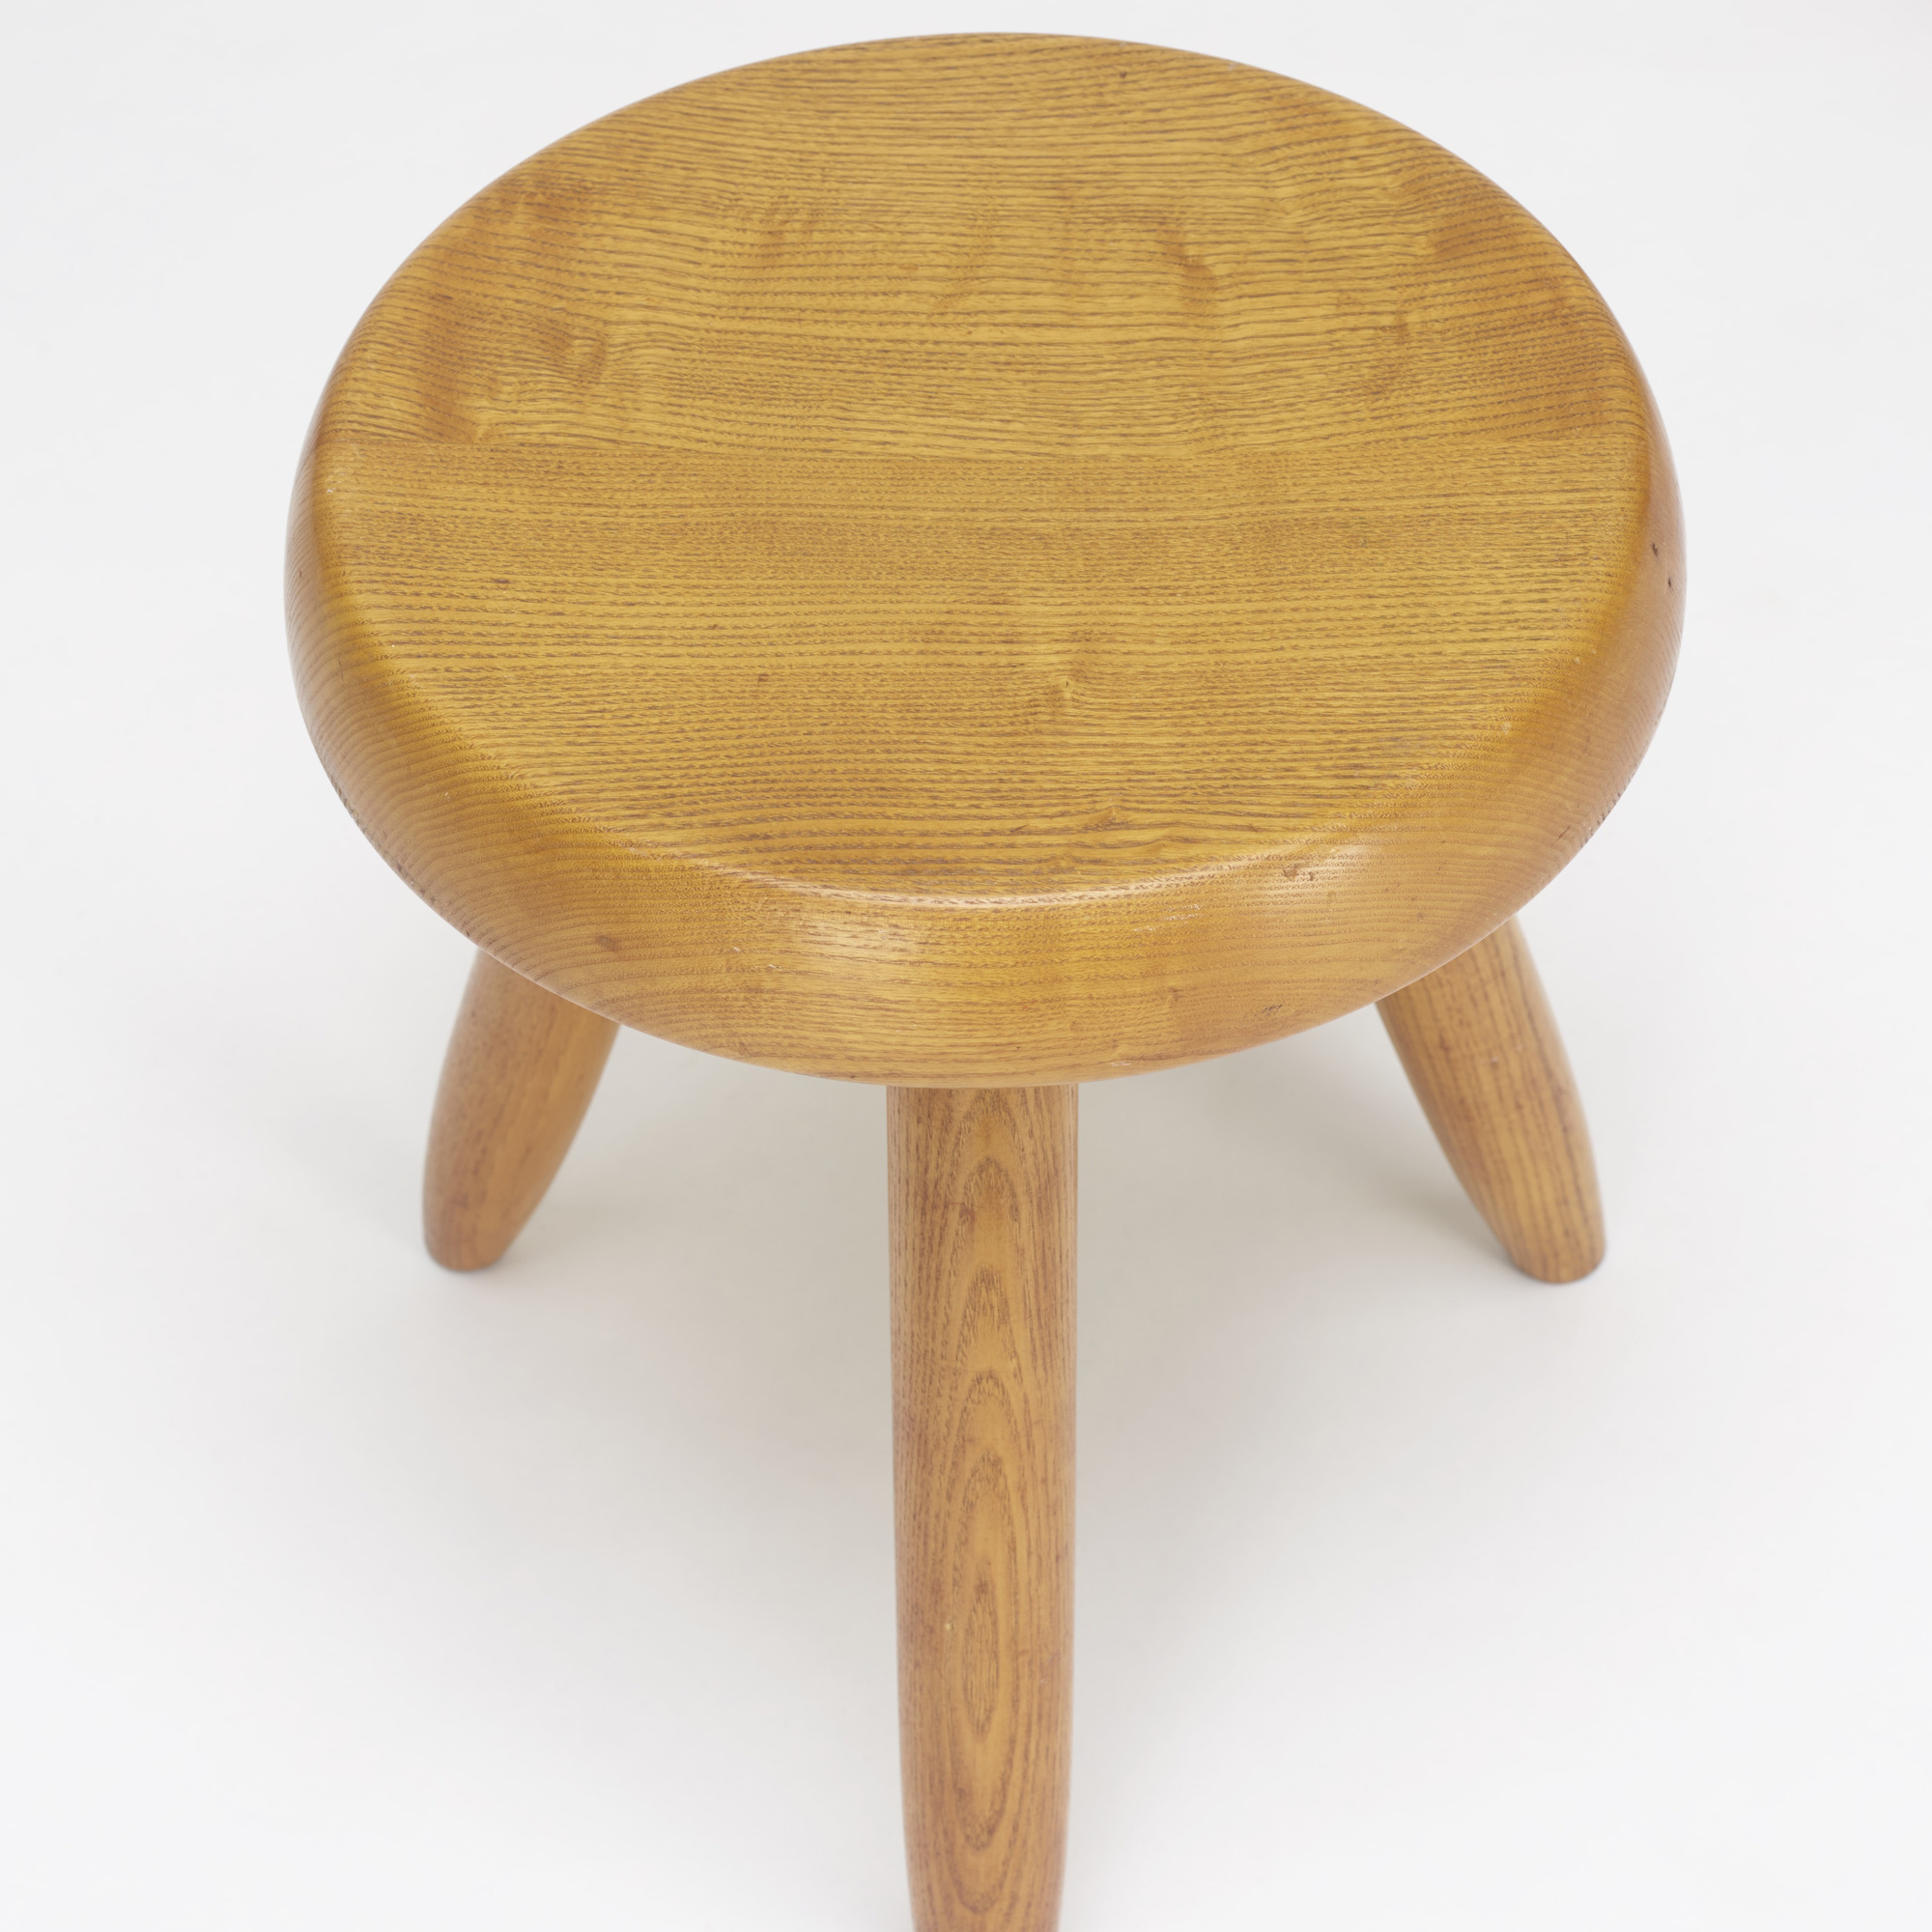 121: Charlotte Perriand / stools, pair (2 of 2)